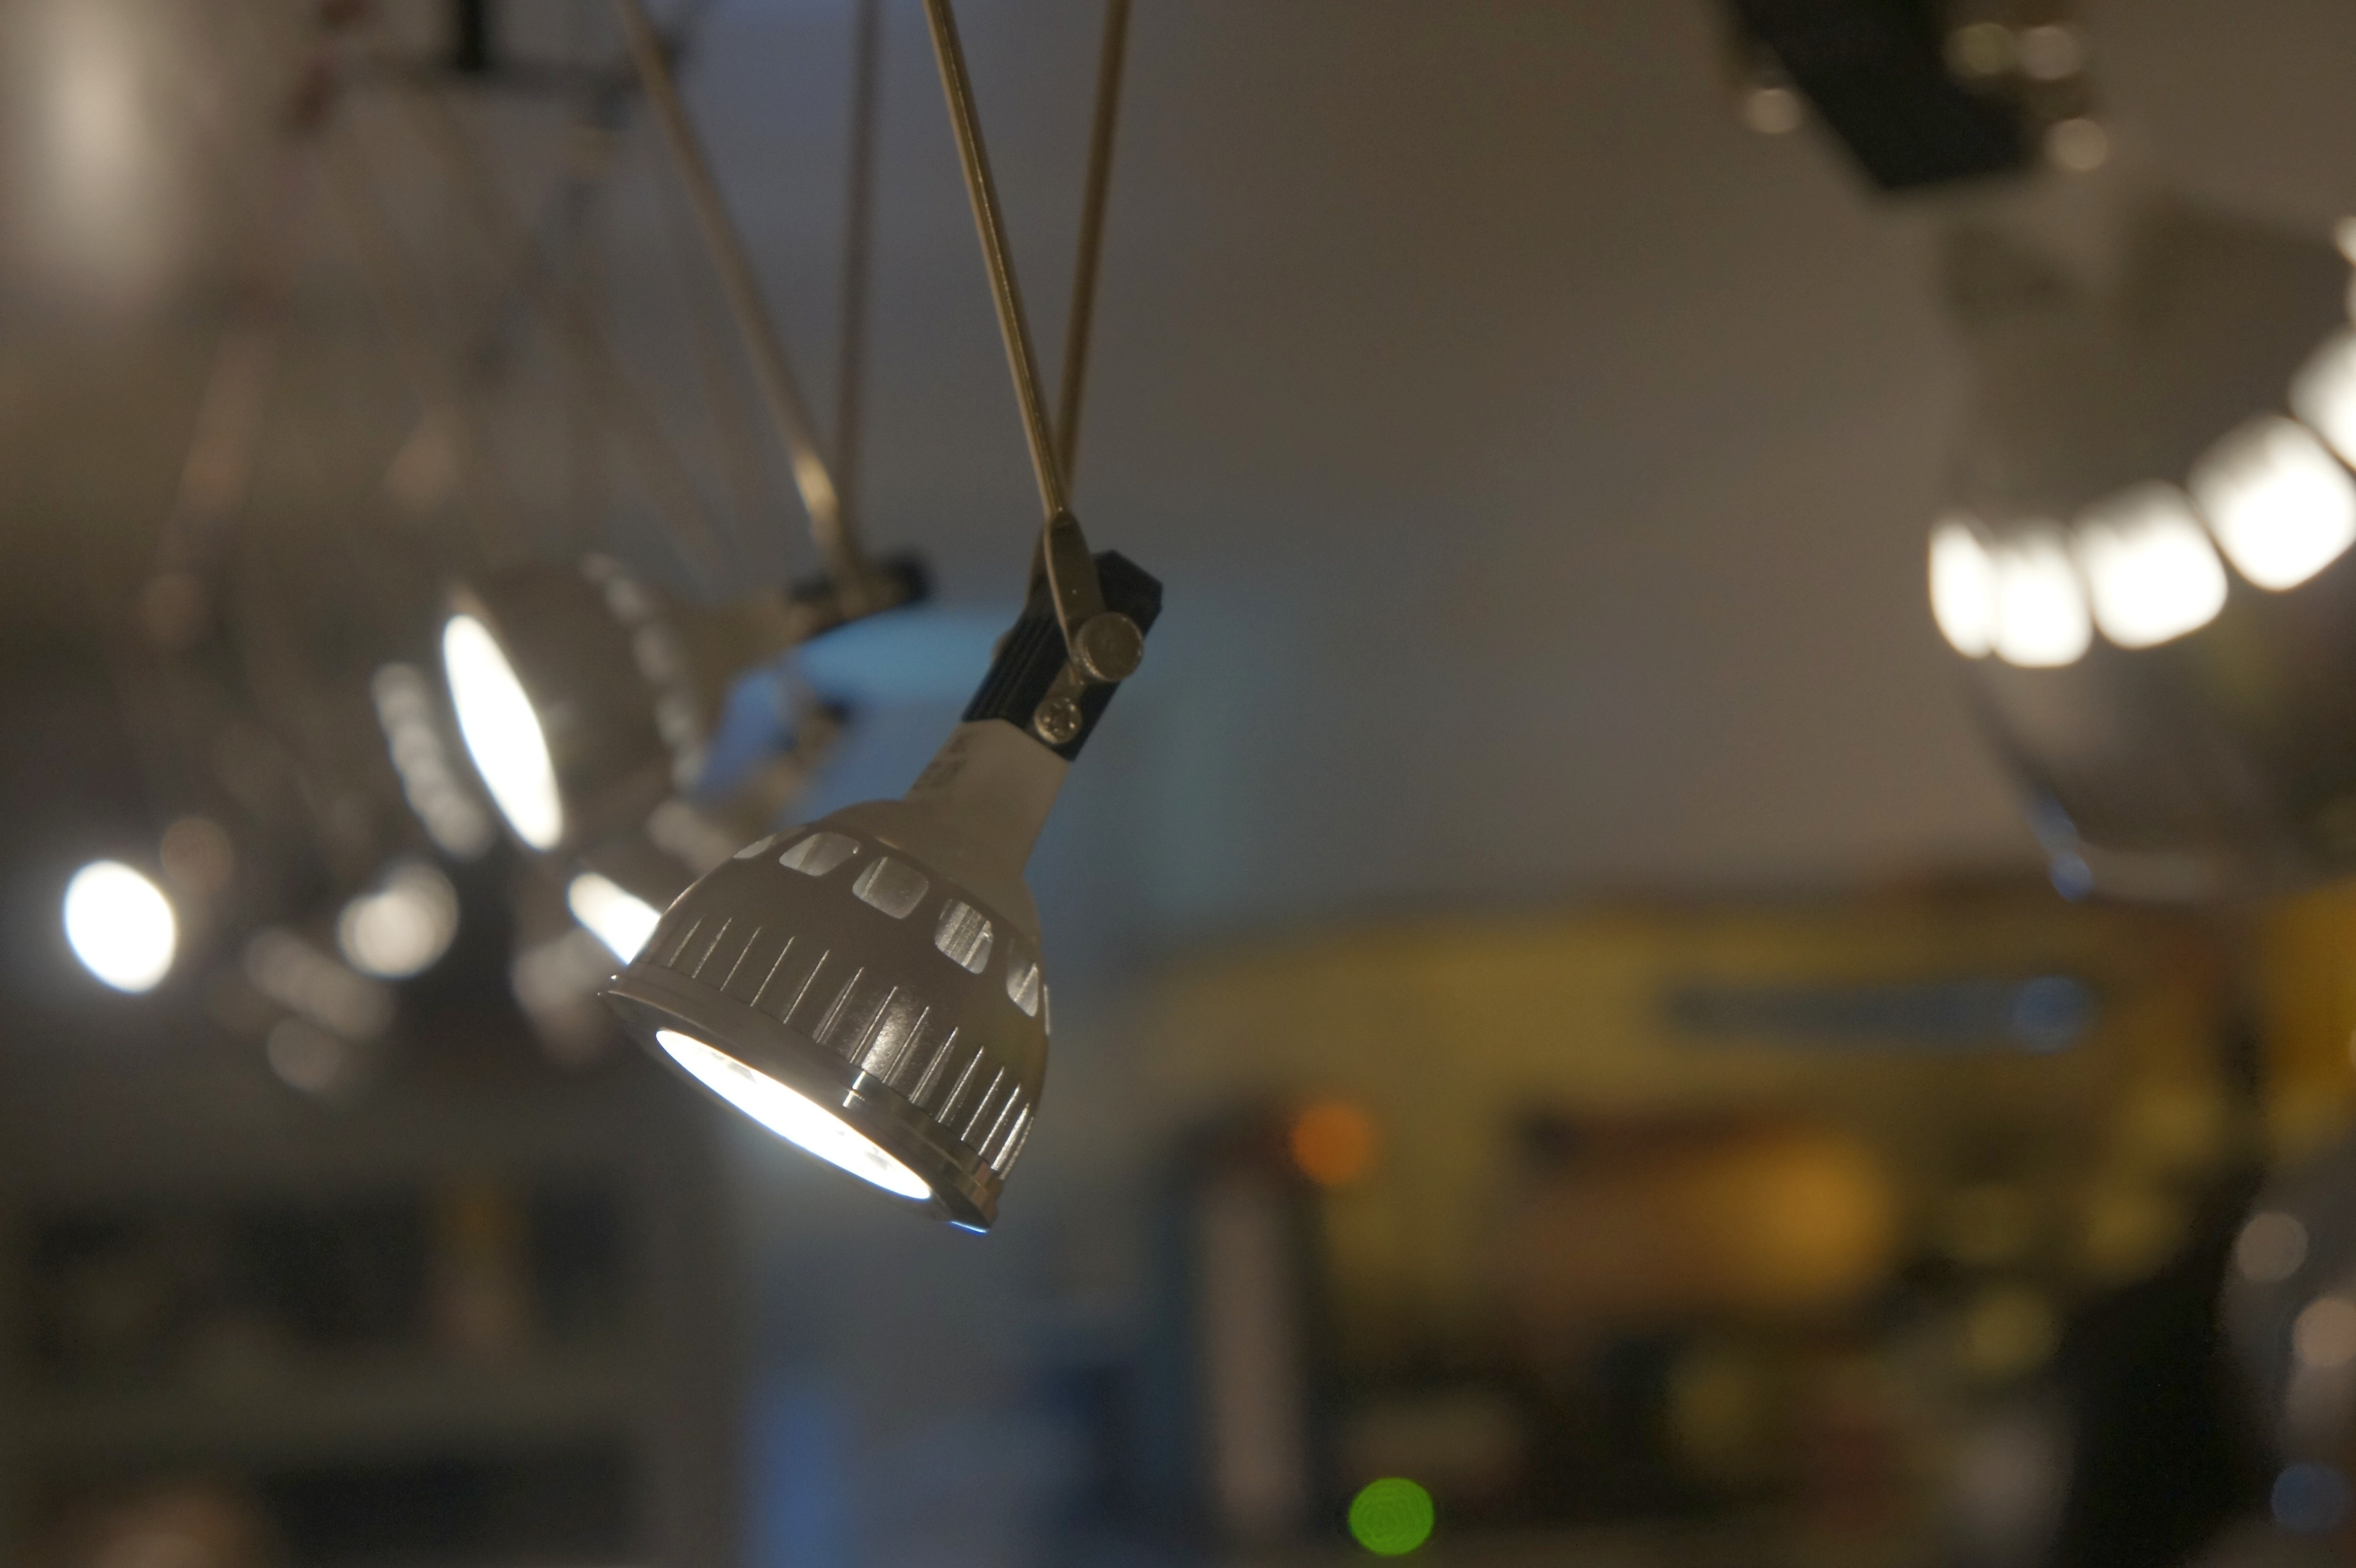 Fabrication Gessel On Use A Relay Or Smart Switch With The 45 Watt Higher Halogen Lights My Kitchen Has Had Lighting For 20 Years From Back When It Was Slightly More Efficient Choice Than Incandescent And Pleasing